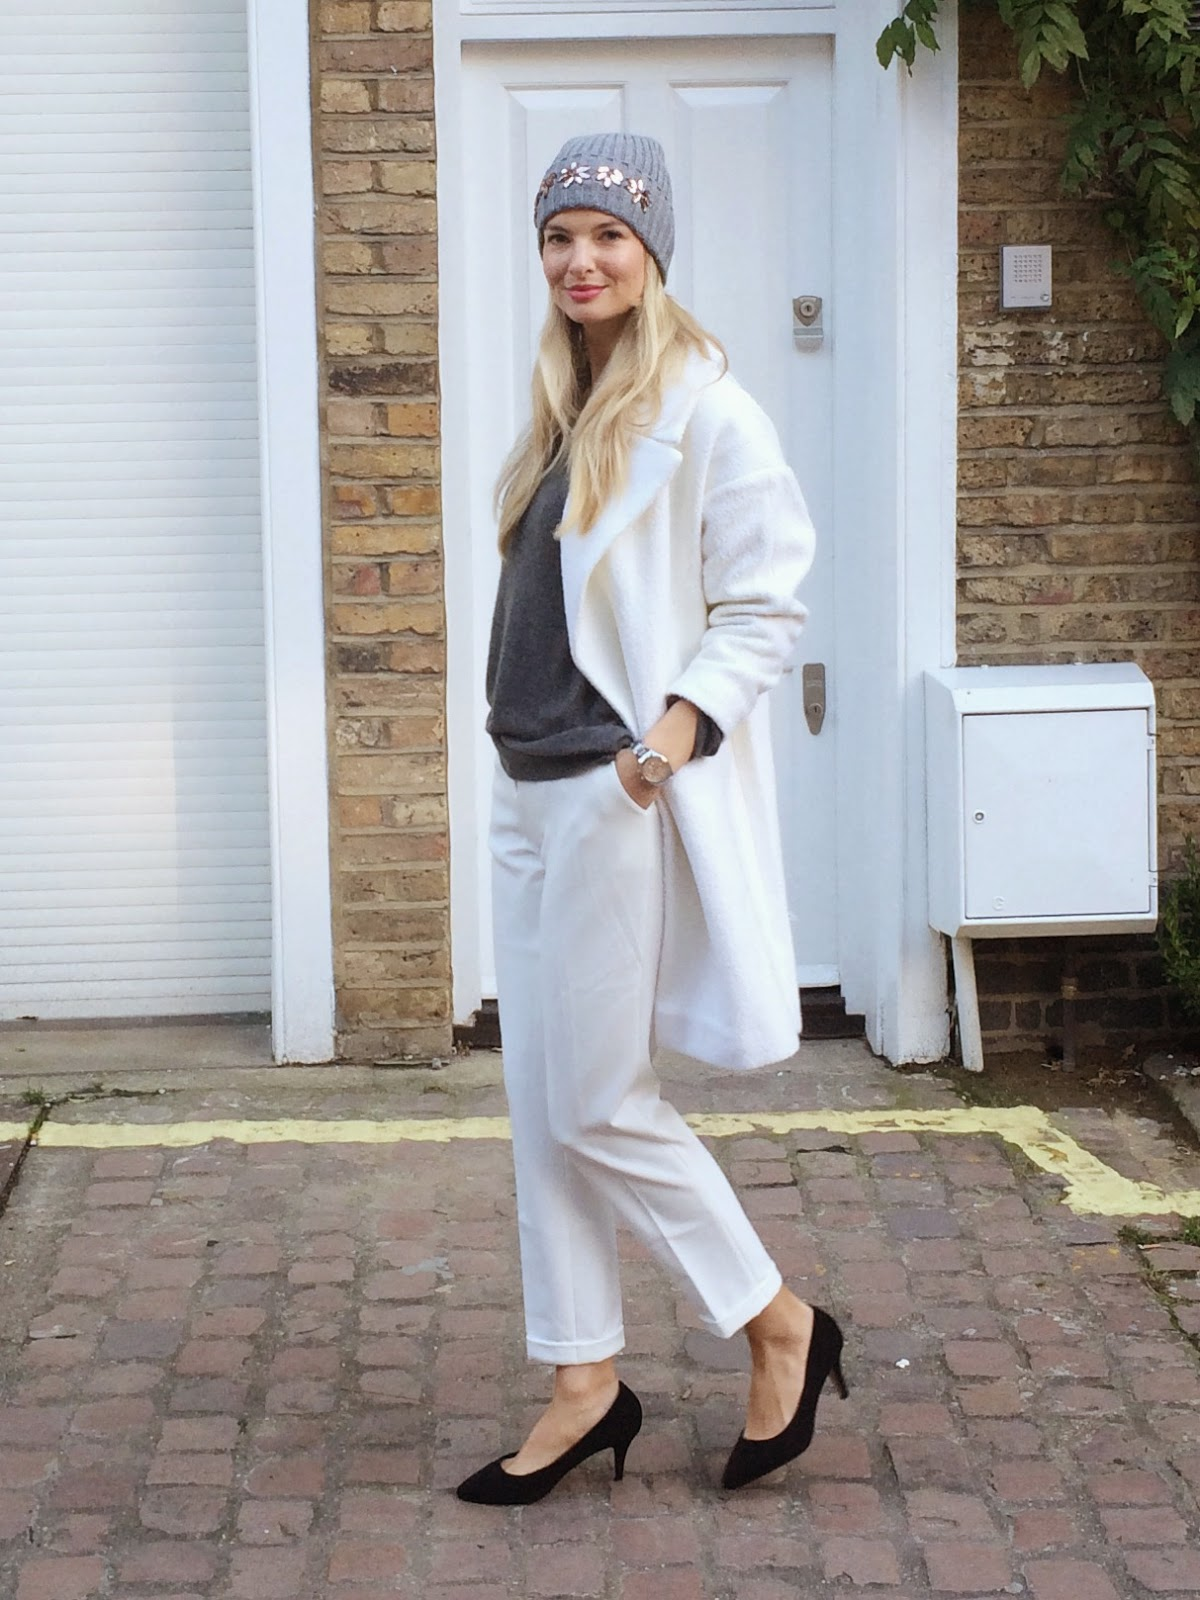 Beanie, embellished beanie, white coat, winter white look, asos coat, slouchy coat, oversize coat, grey jumper, boyfriend jumper, tailerd trousers, white trousers, kurt geiger heels, blonde hair, fashion blogger, streetstyle, street style london